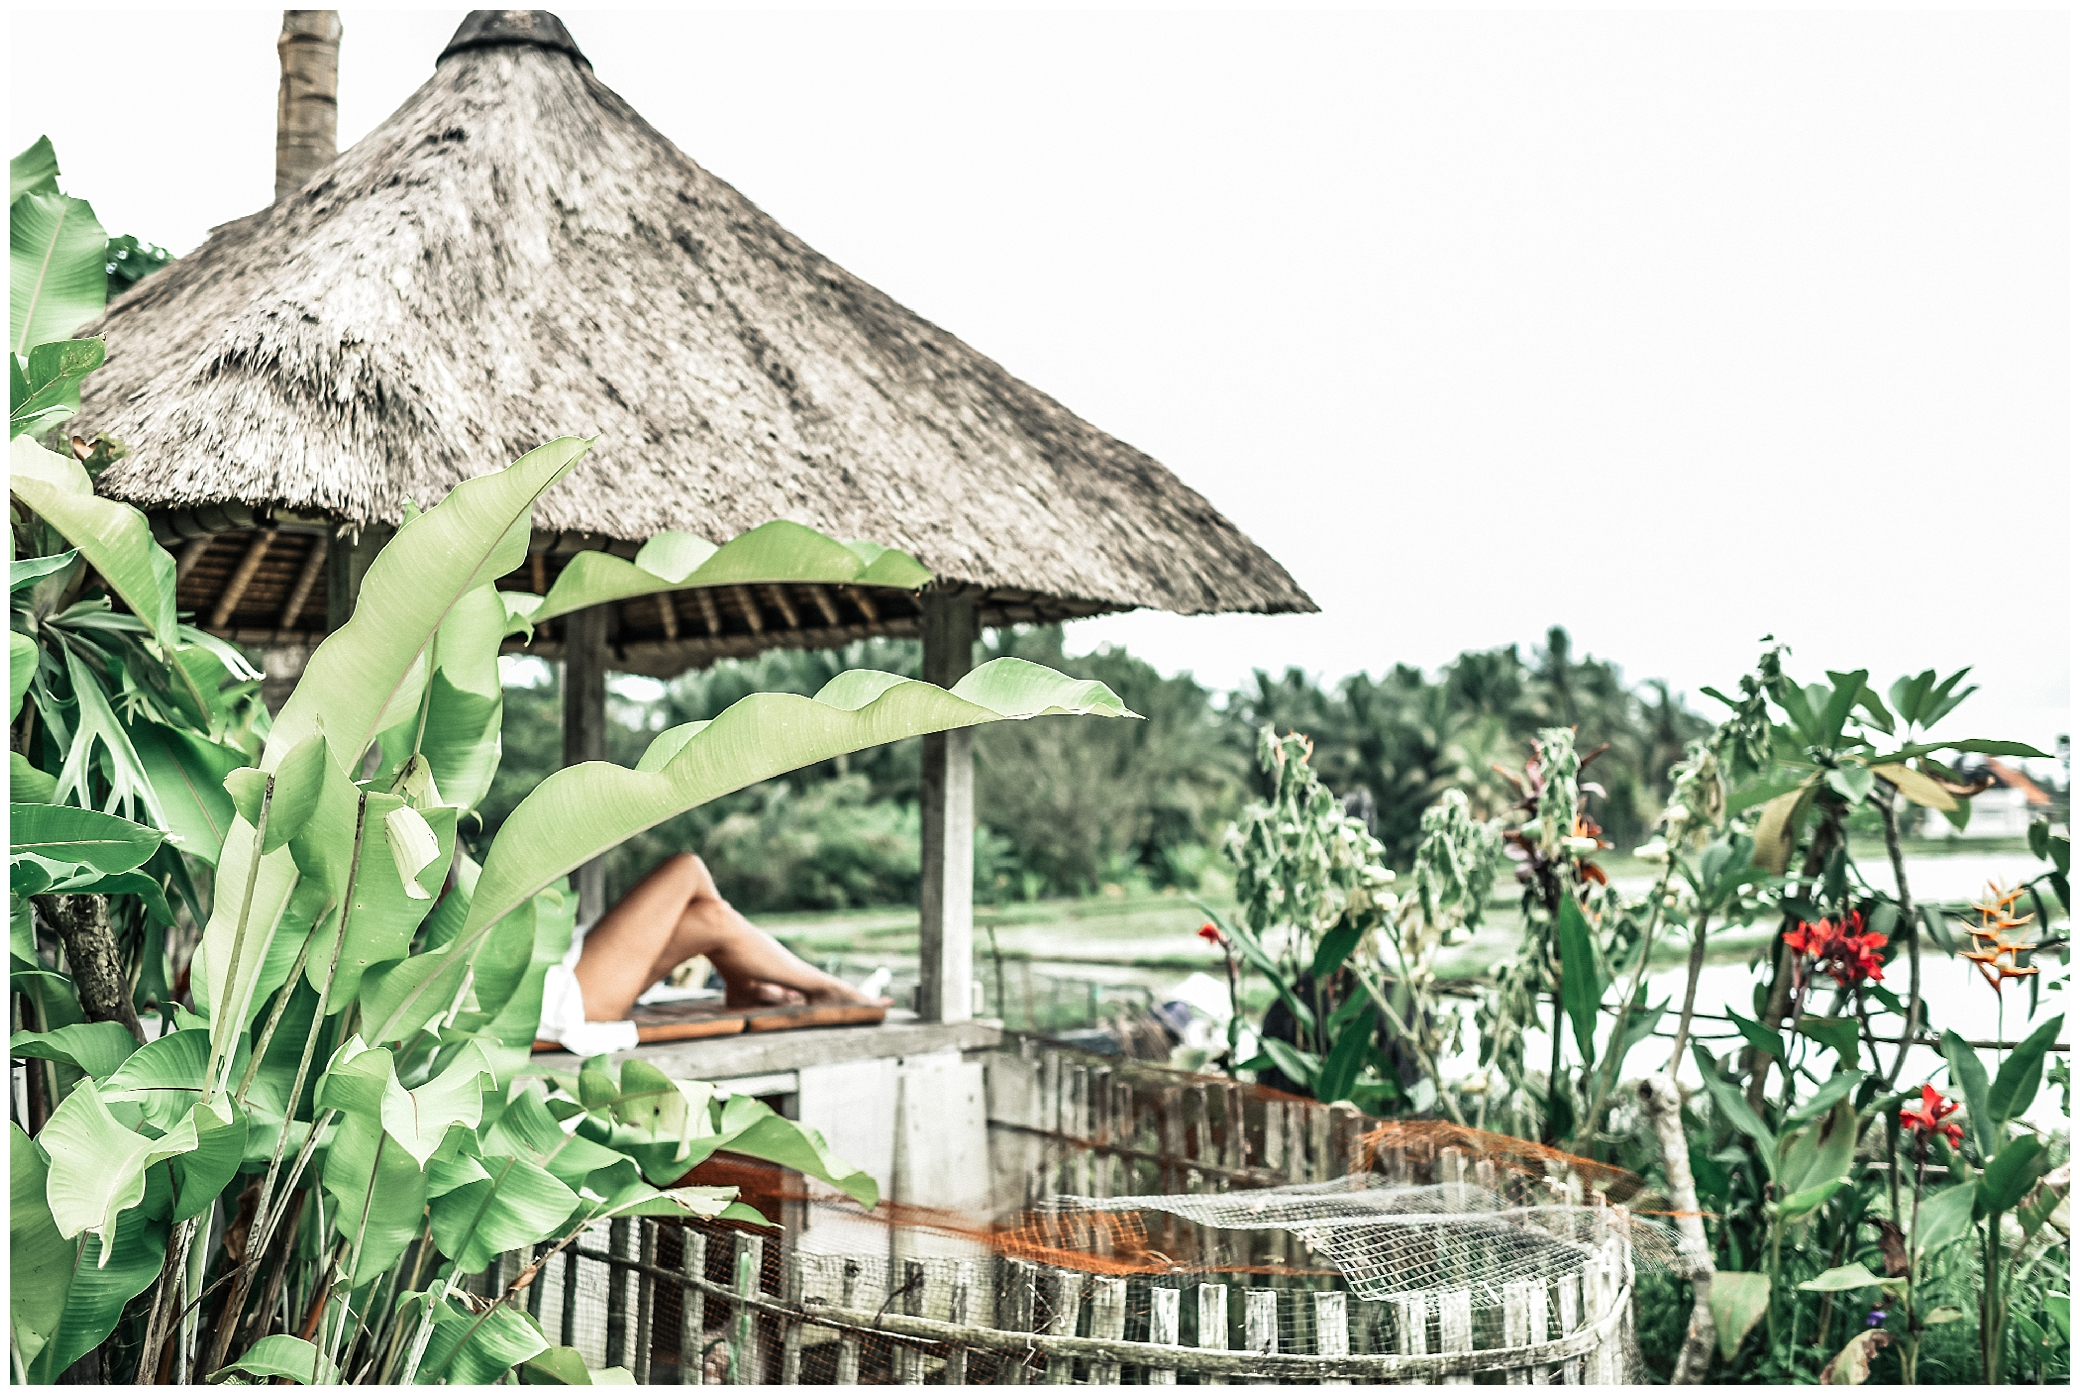 Top 10 Awesome Things To Do In Ubud_0032.jpg